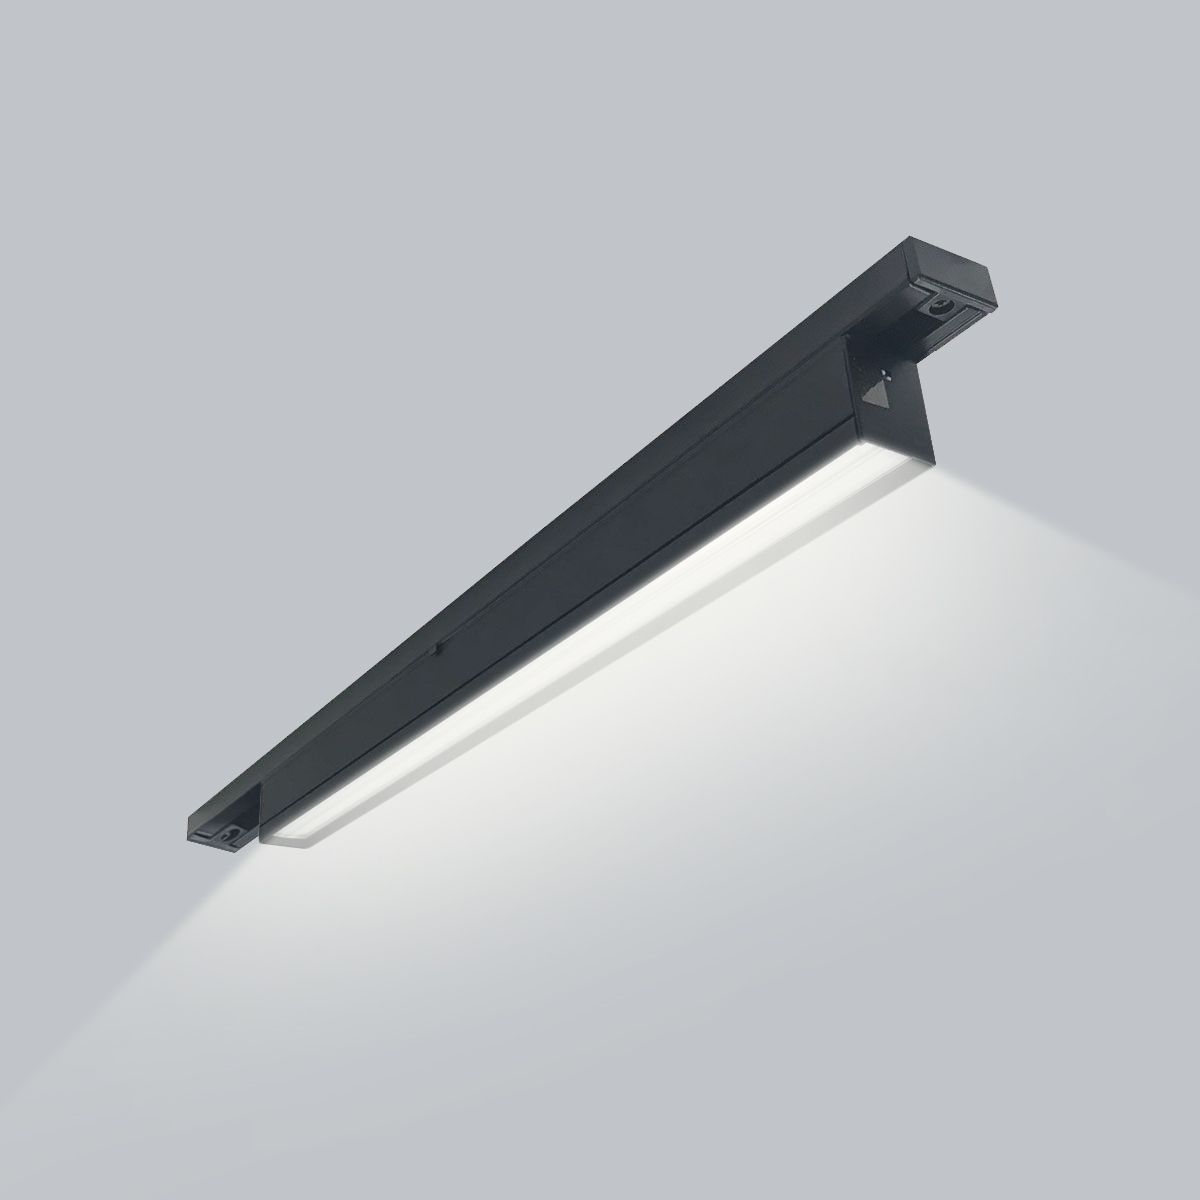 alcon 13150 architectural led linear track light fixture